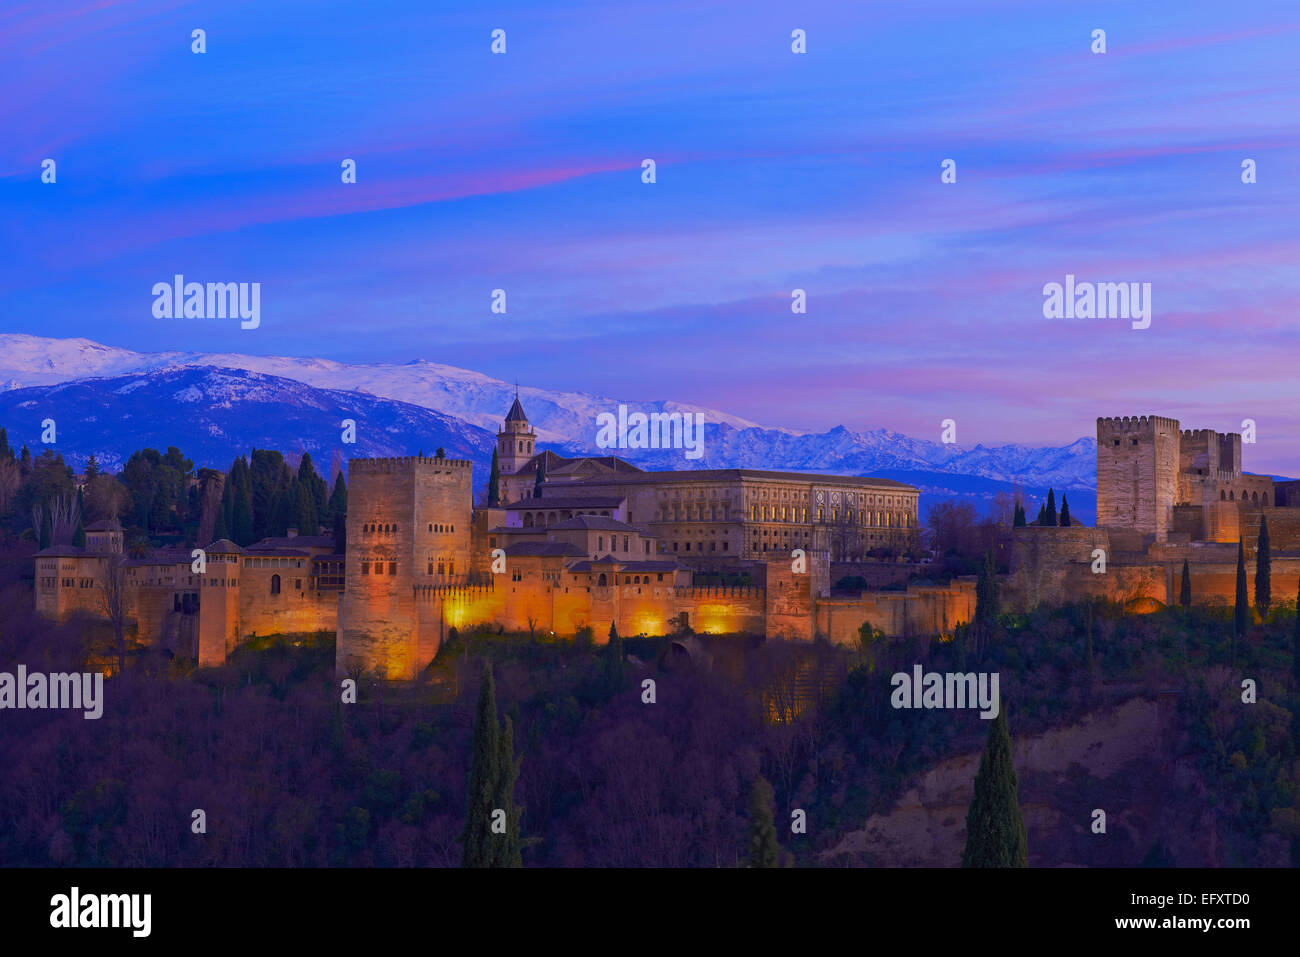 Alhambra, UNESCO World Heritage Site, Sierra Nevada and la Alhambra at Dusk, Granada, Andalusia, Spain Stock Photo